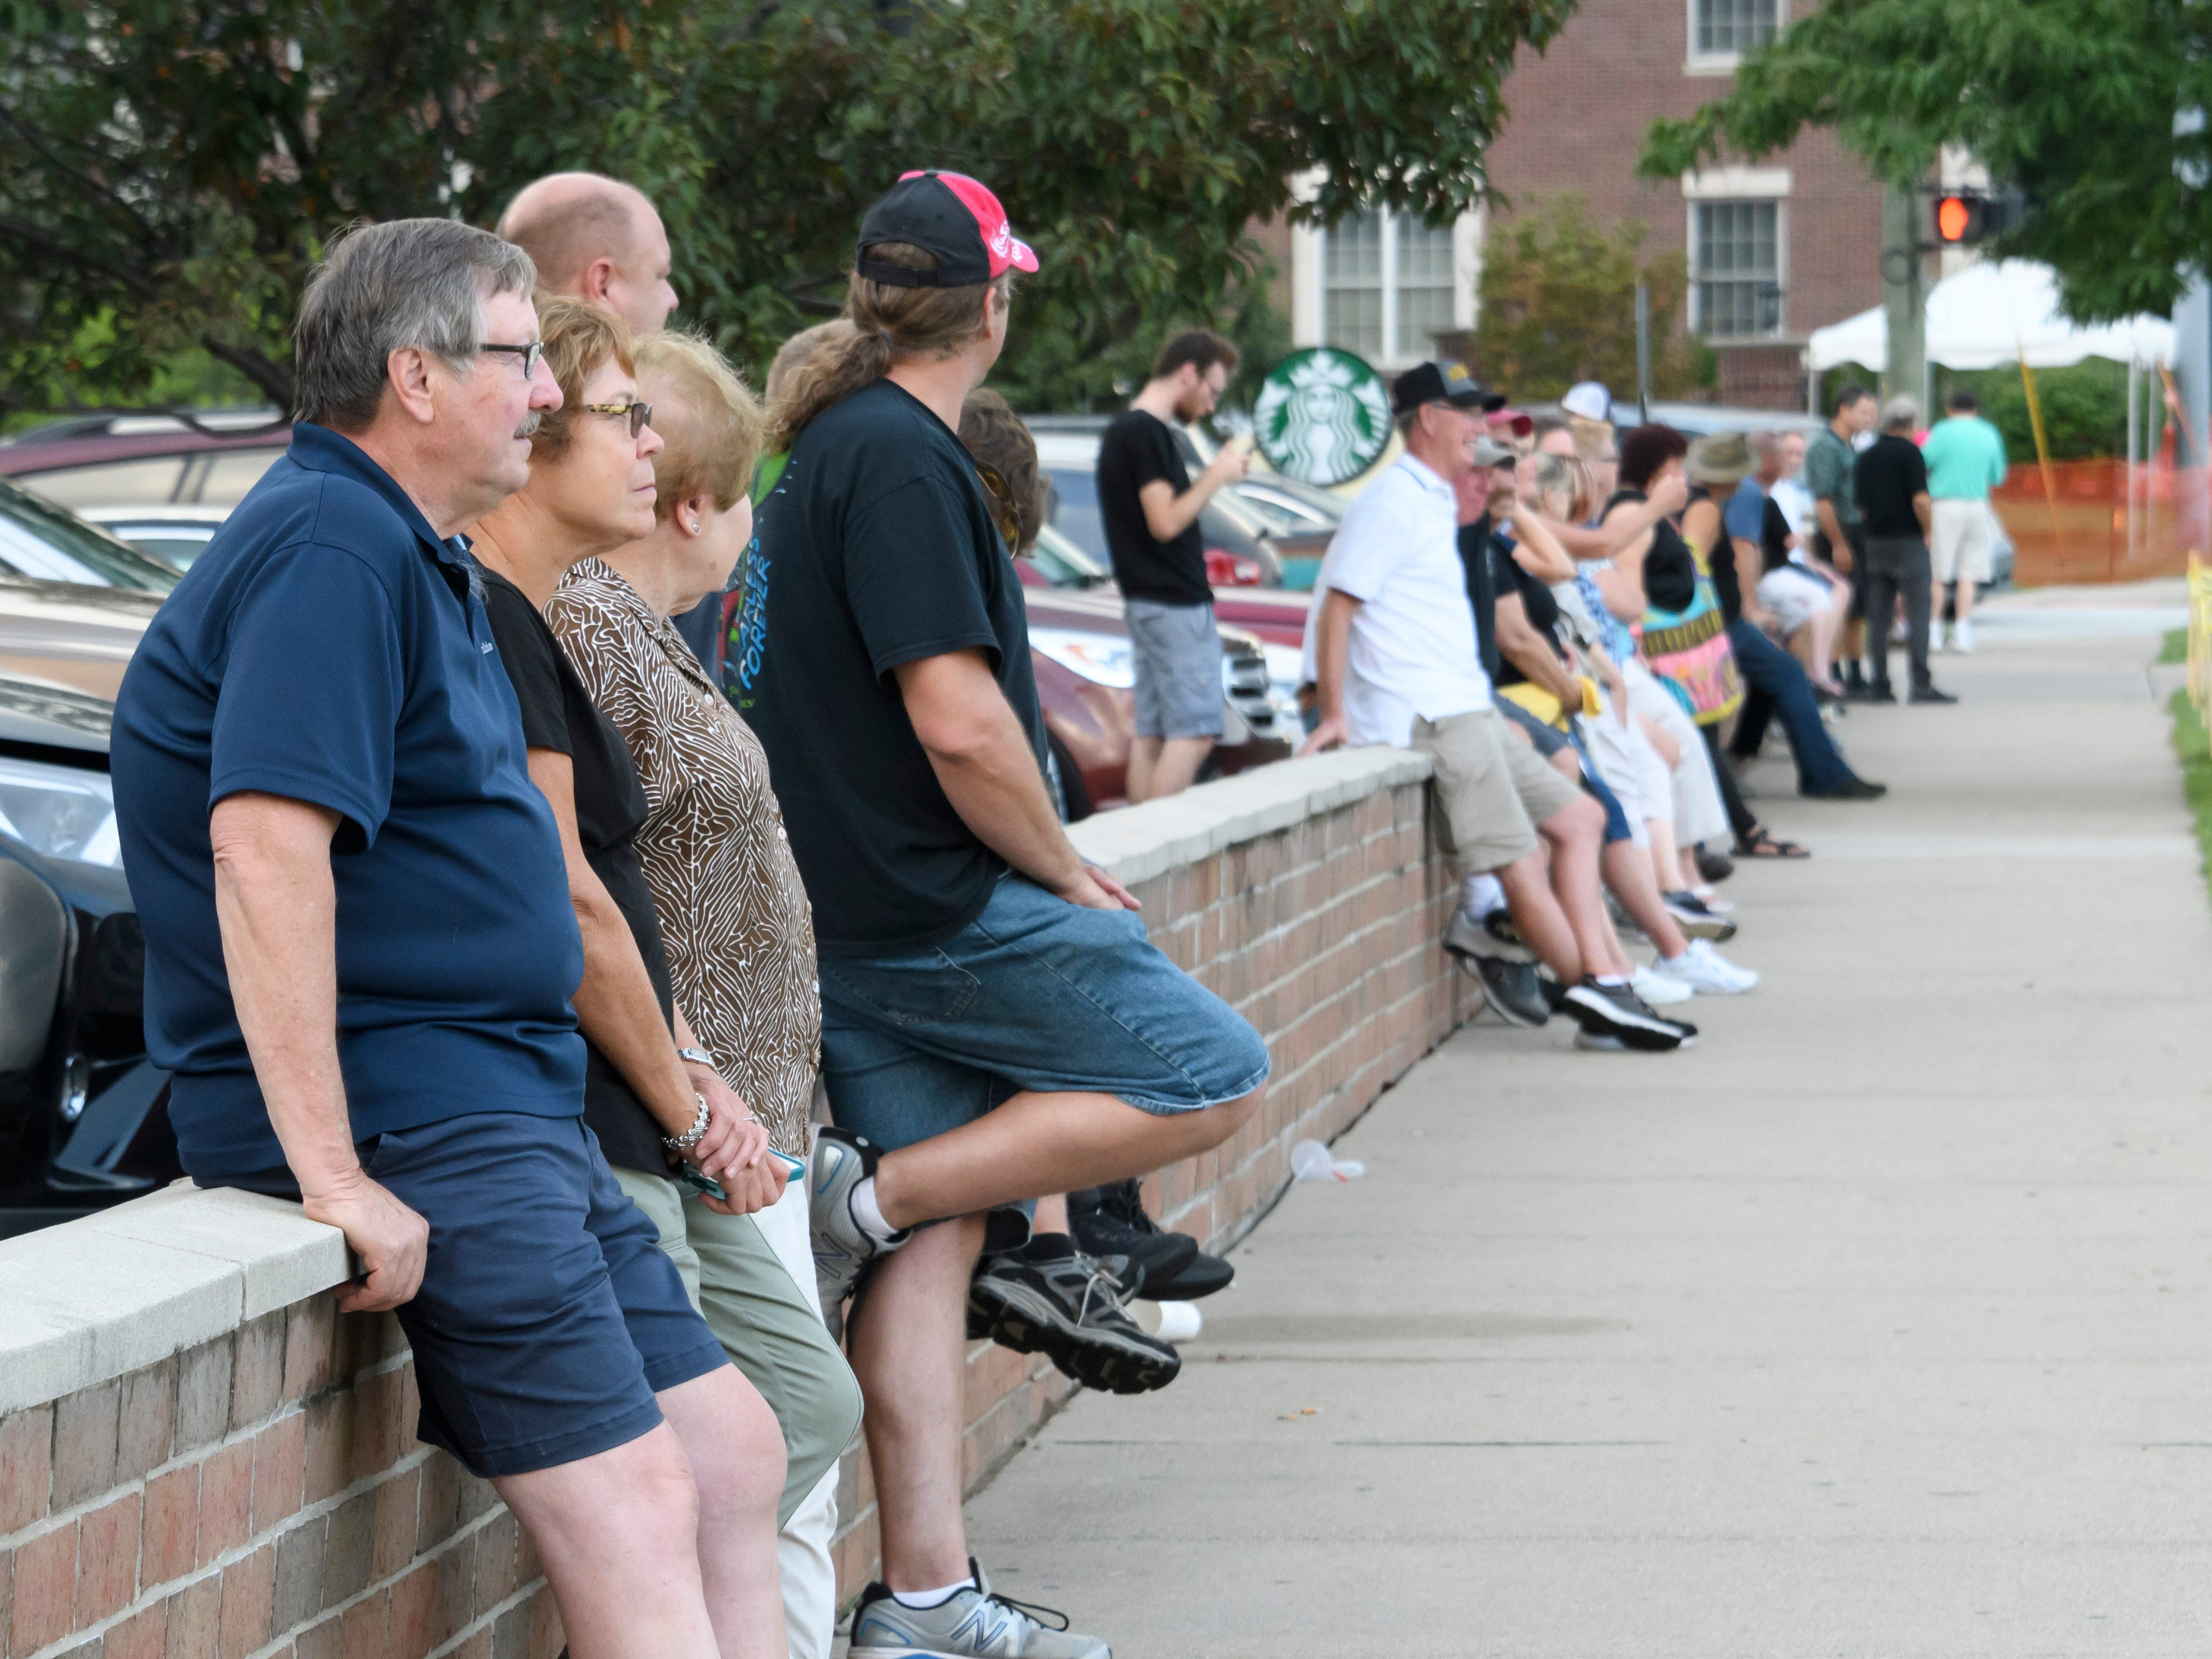 Groups of people line Woodward near Normandy Thursday in Royal Oak to watch cars cruise past.